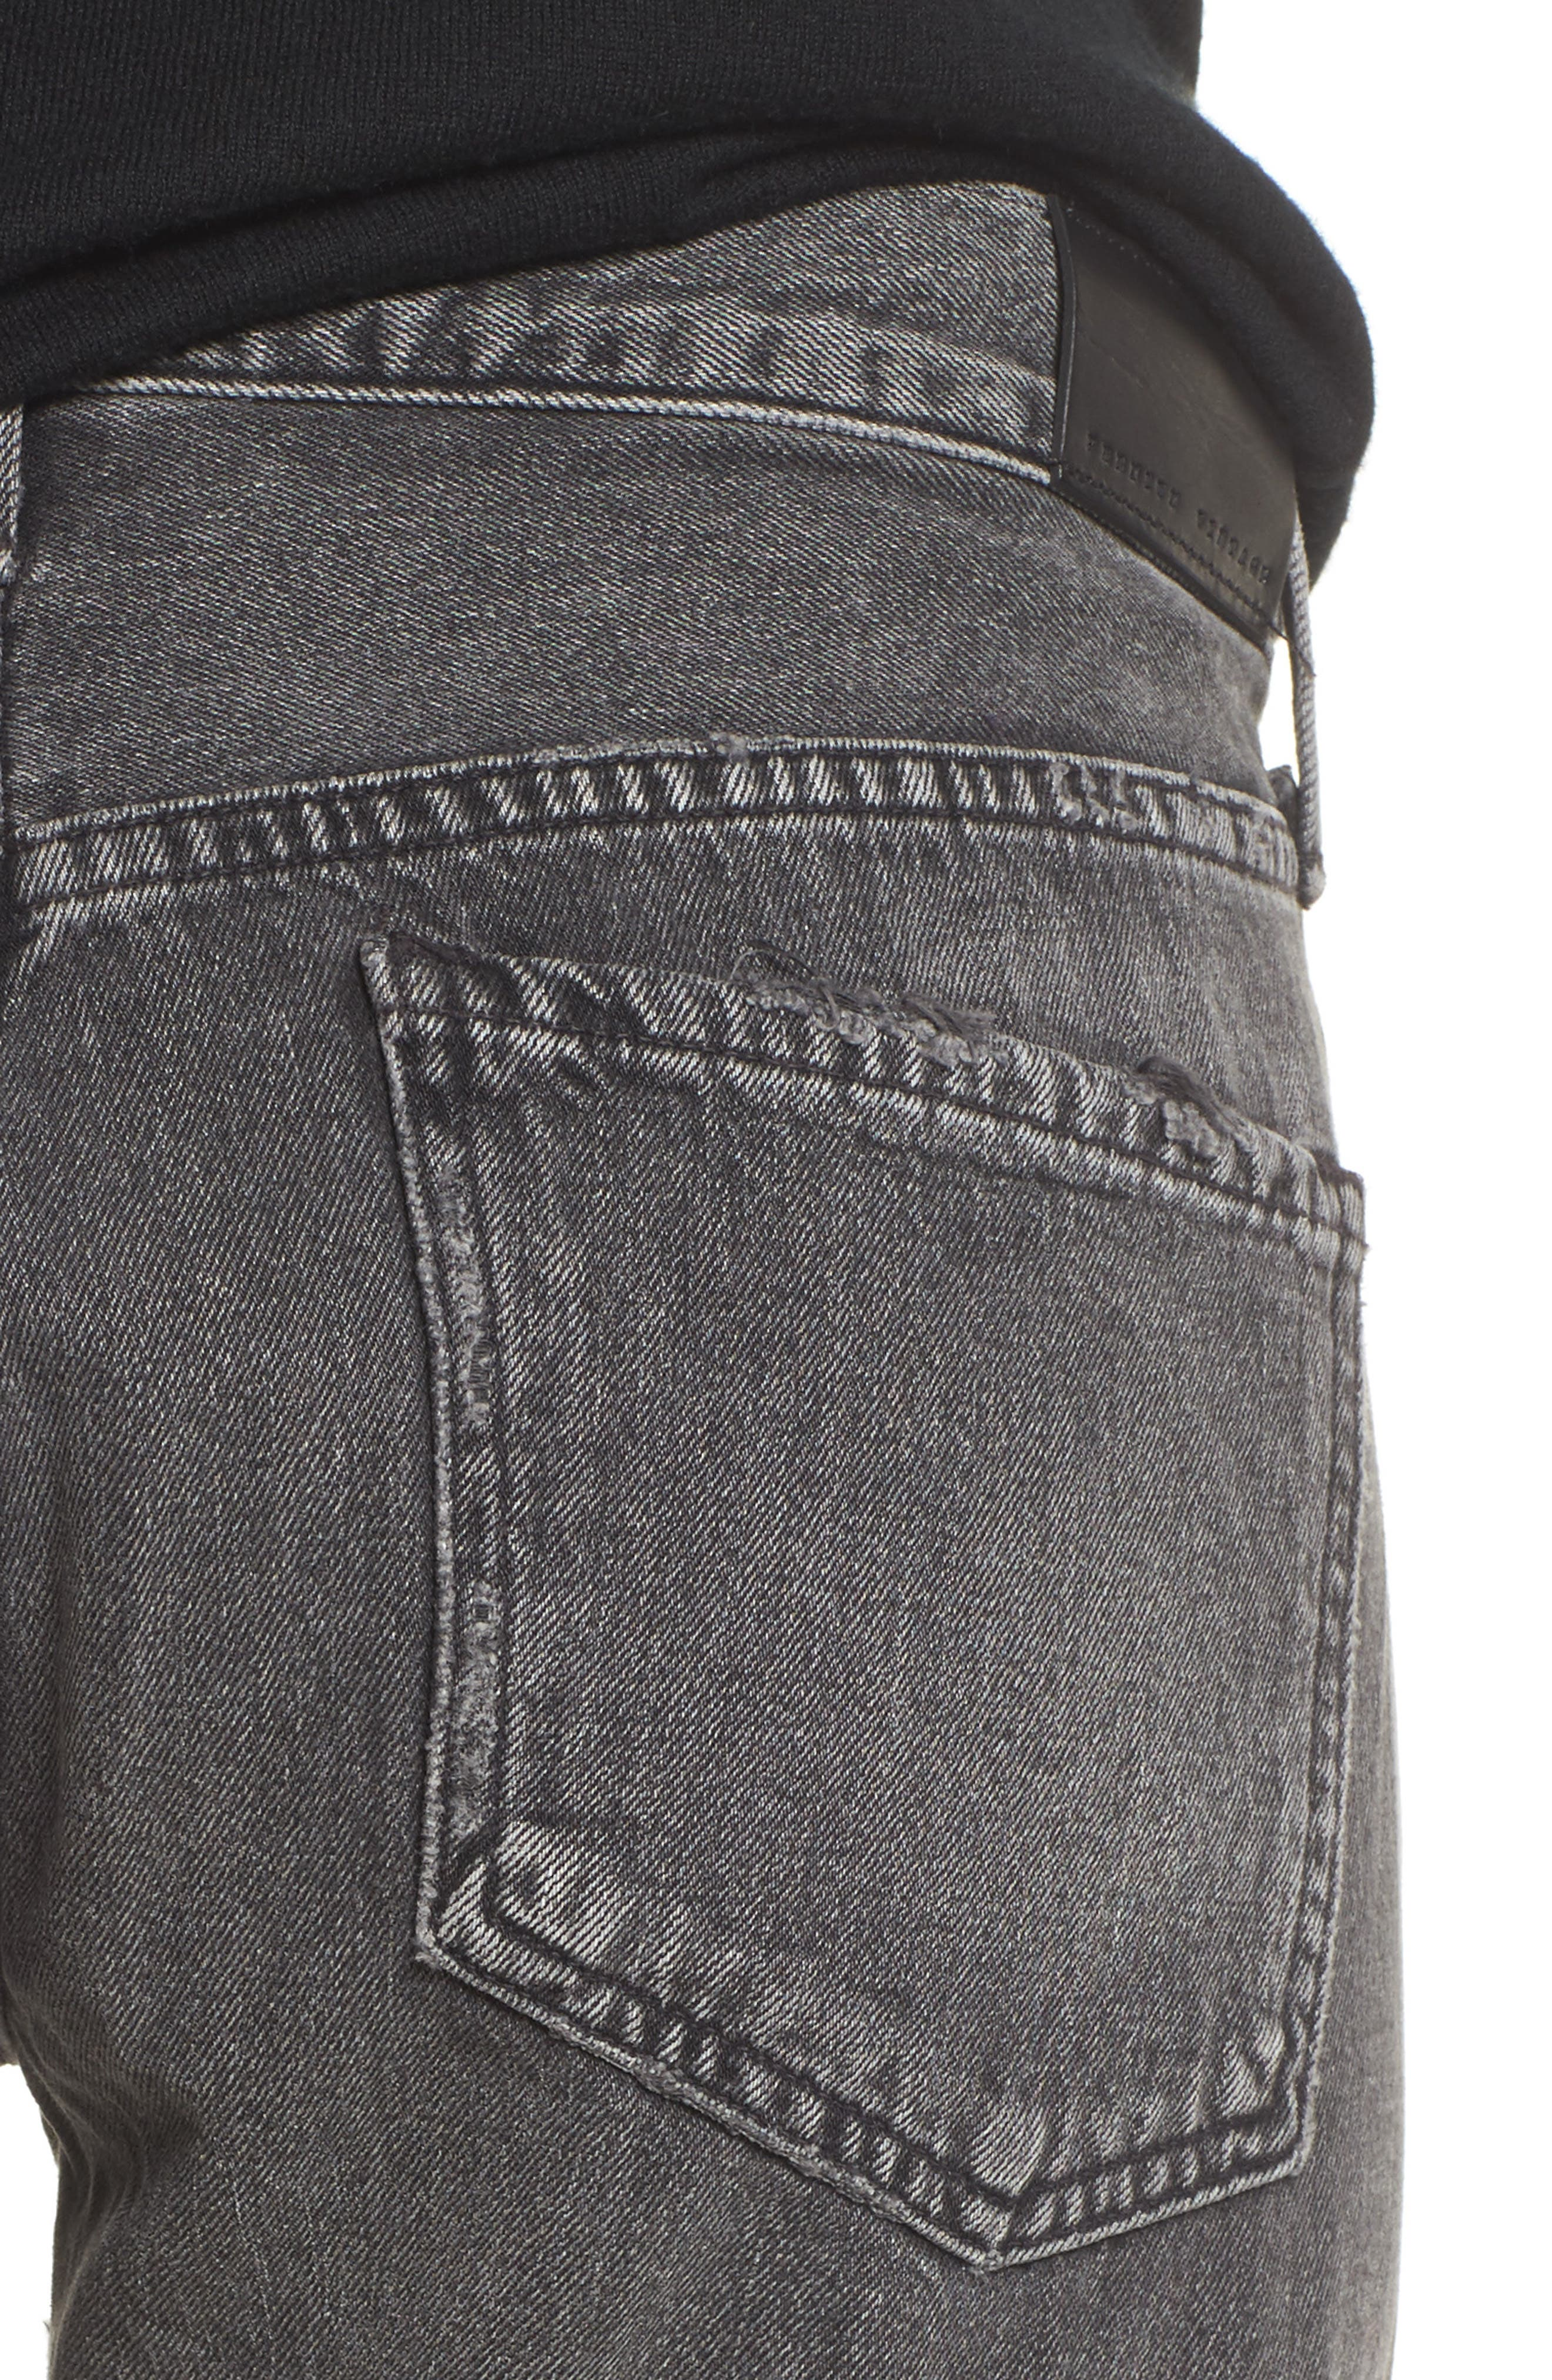 Alternate Image 4  - Citizens of Humanity Emerson Studded Slim Boyfriend Jeans (Studded Hideout)